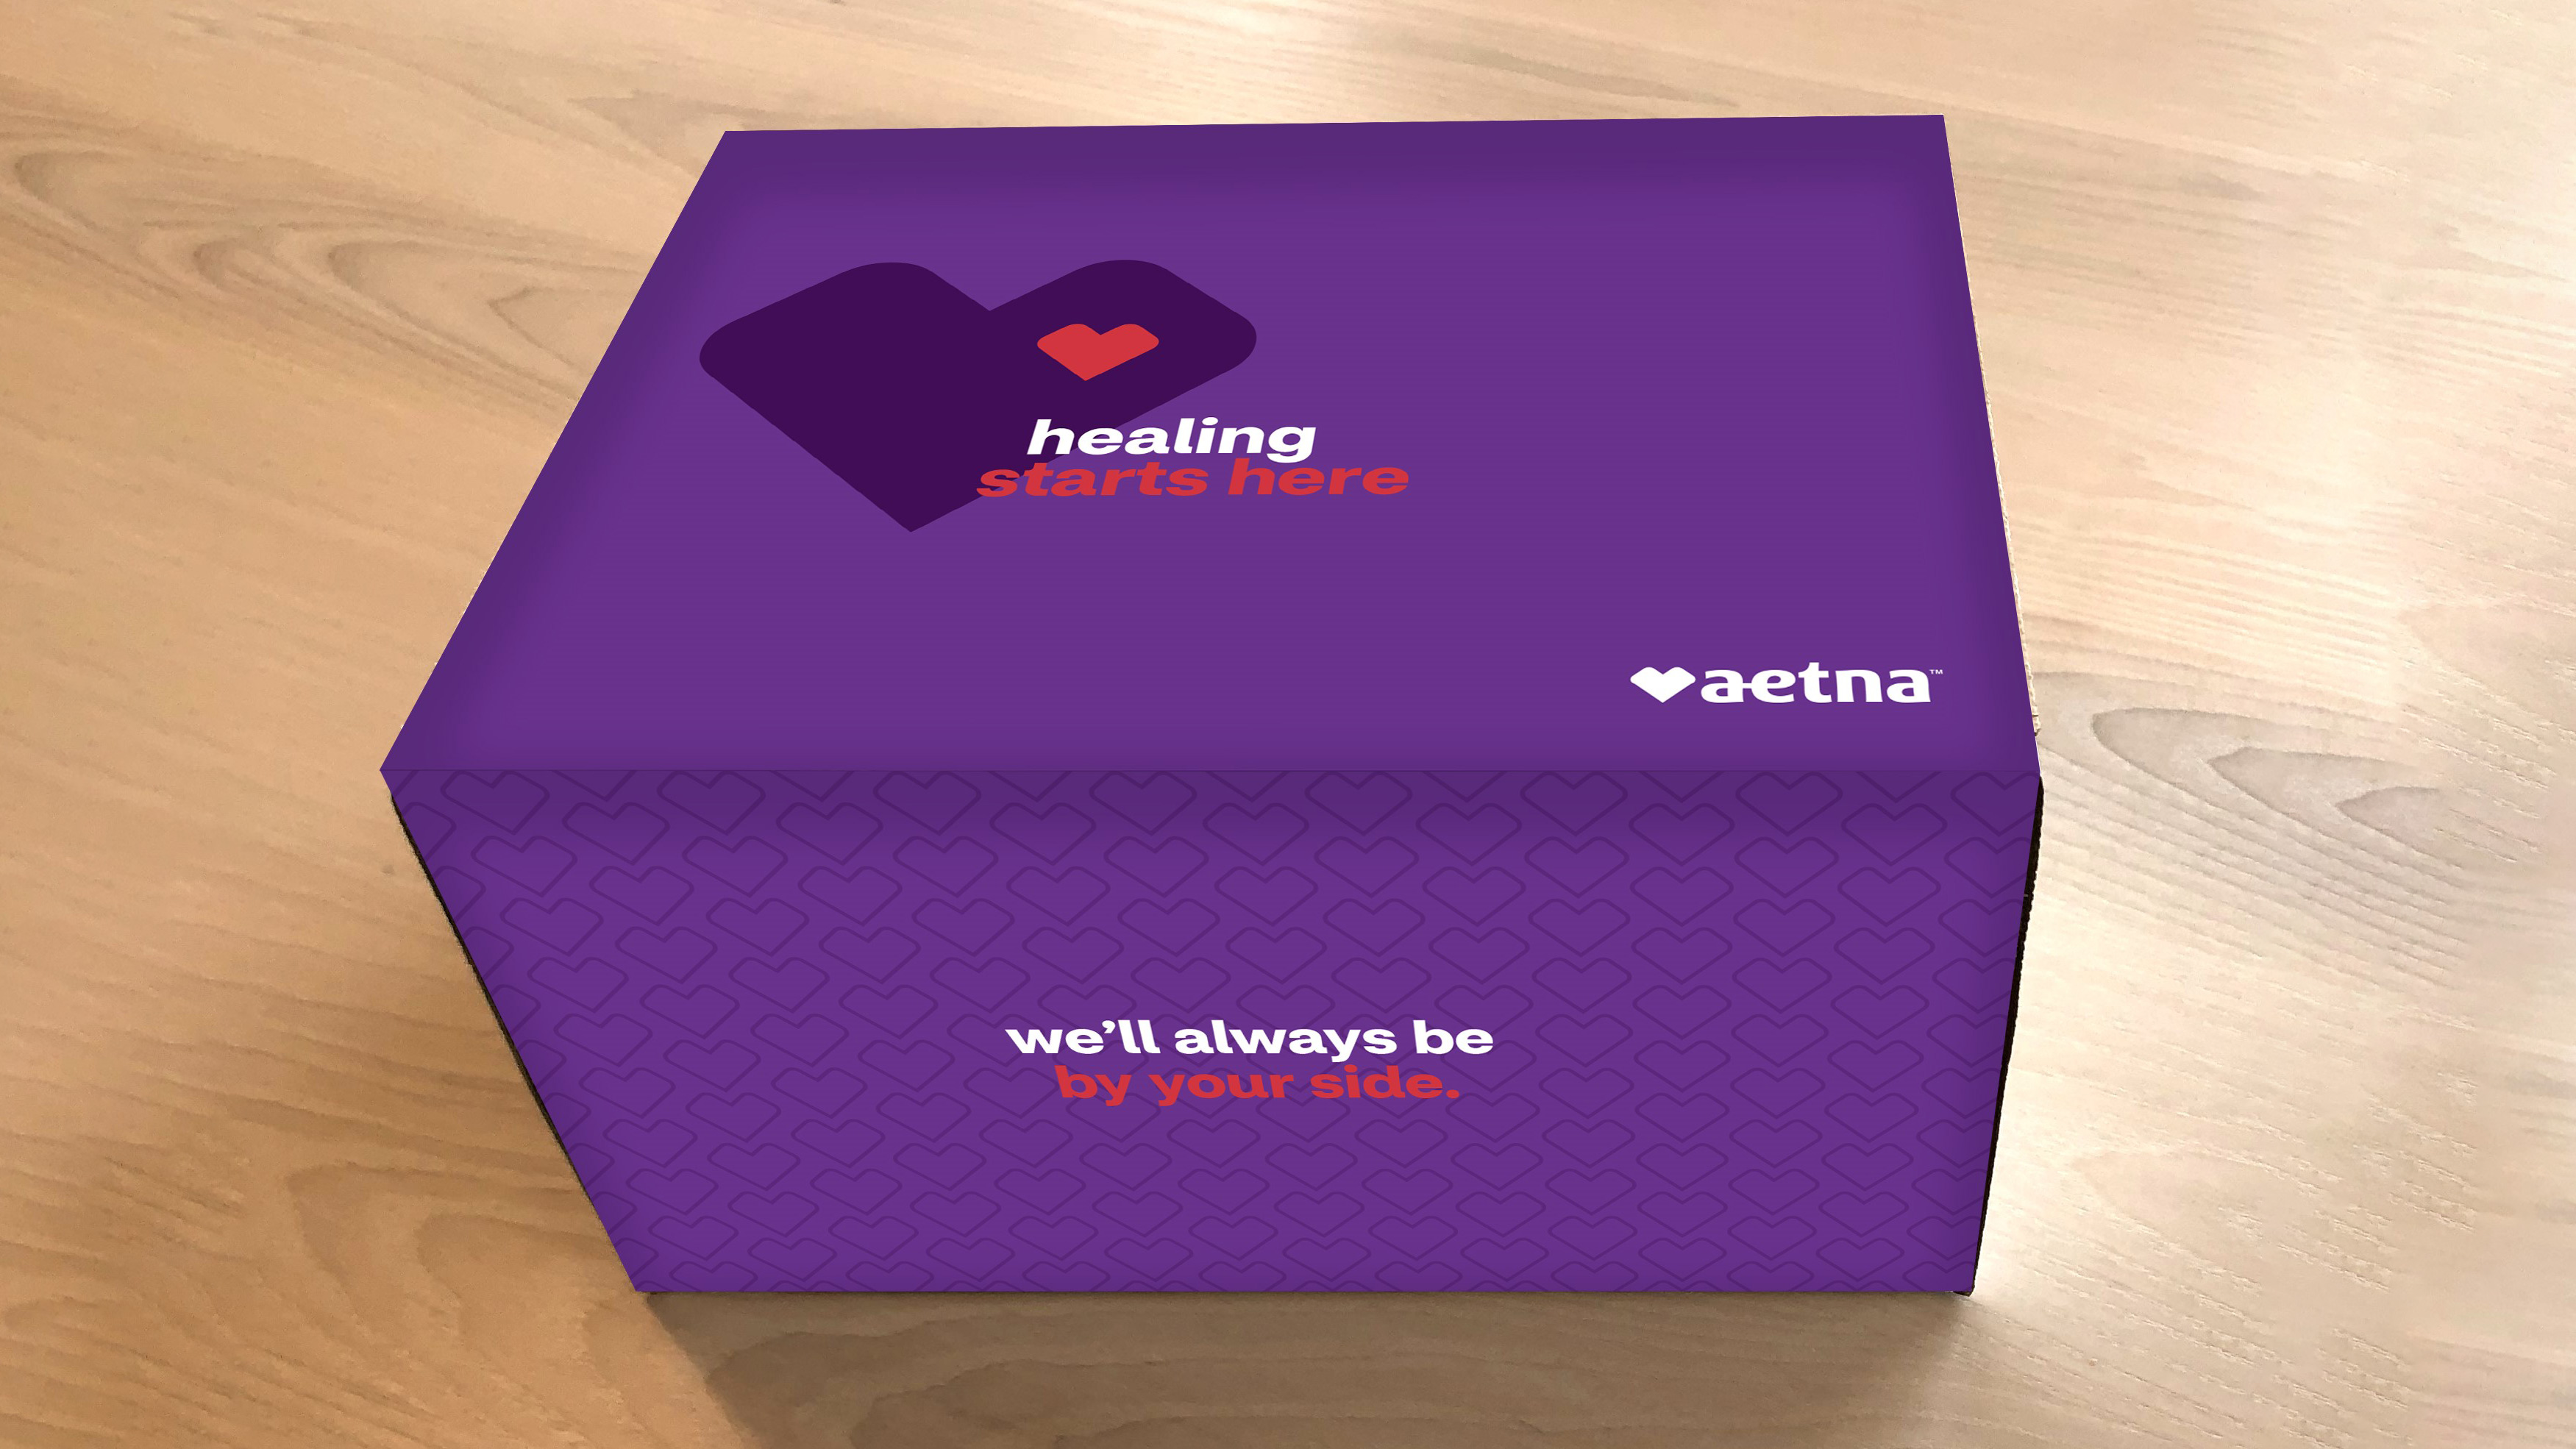 A COVID-19 care package, provided to members through the Aetna Healing Better program.